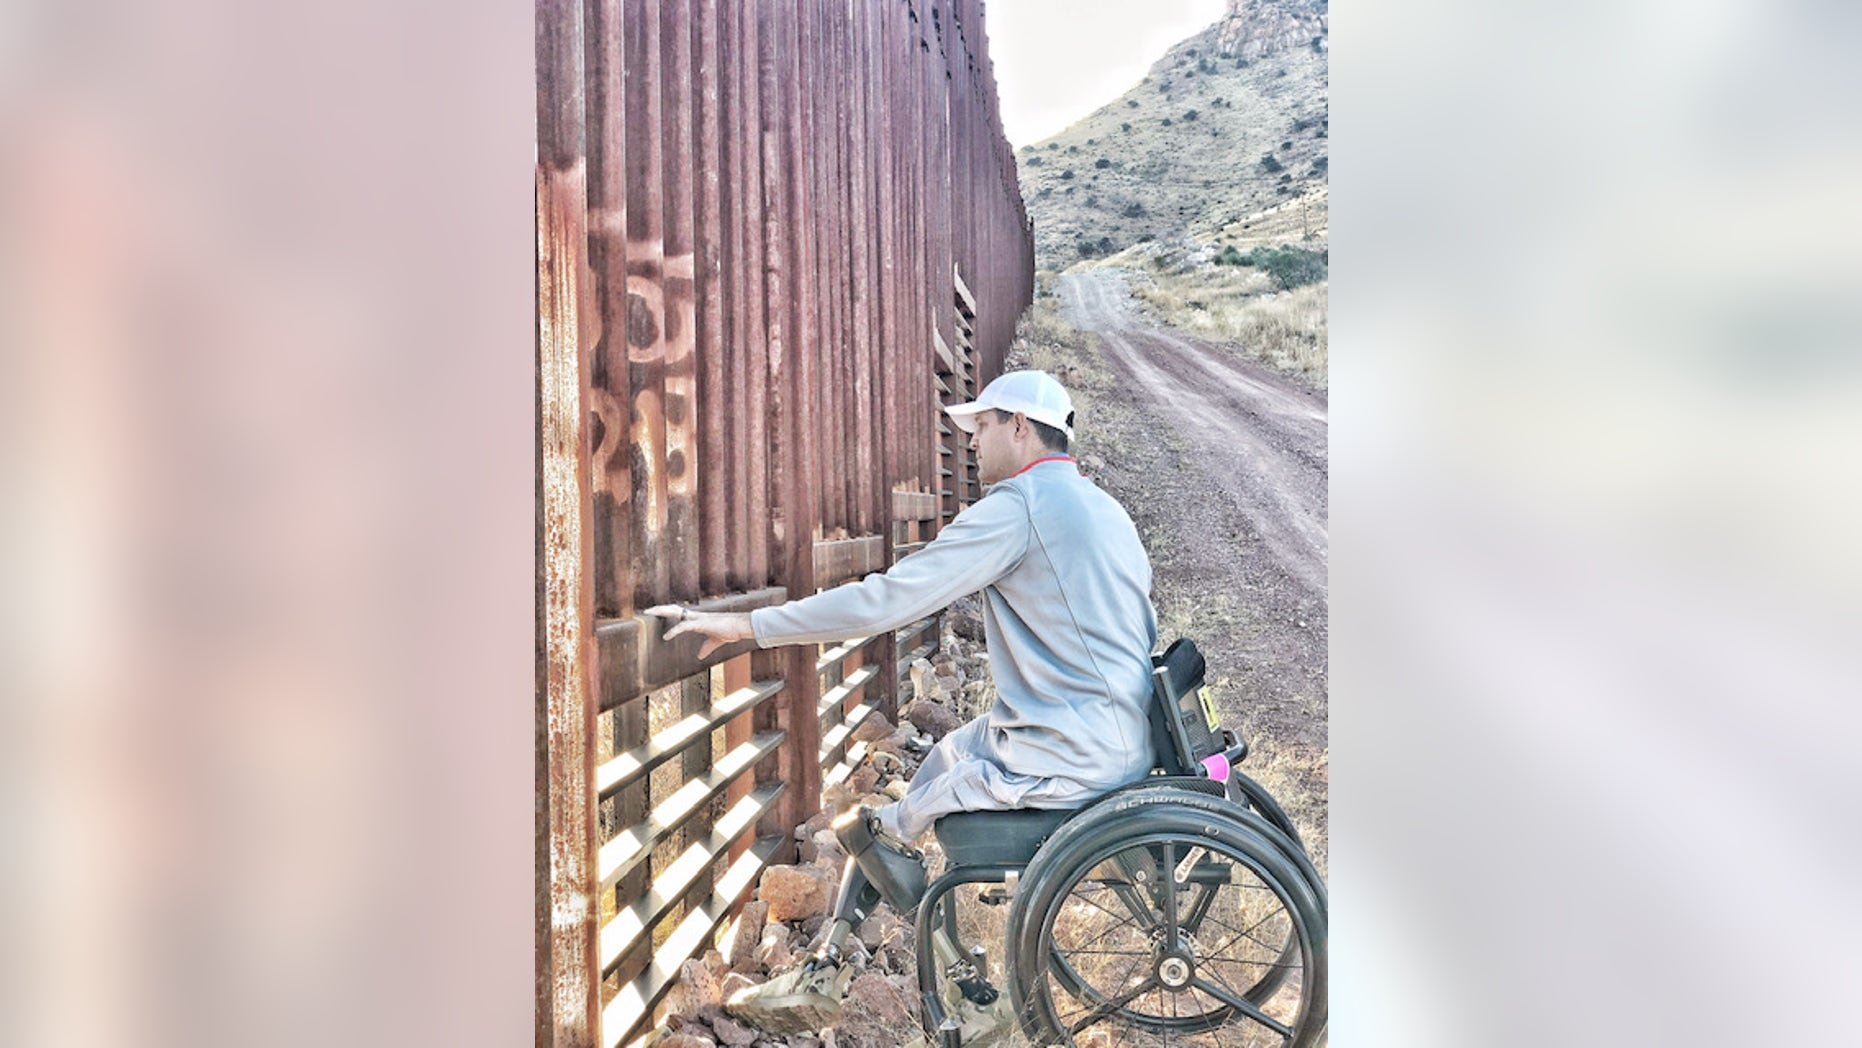 Brian Kolfage on a visit to the Arizona-Mexico border last month.